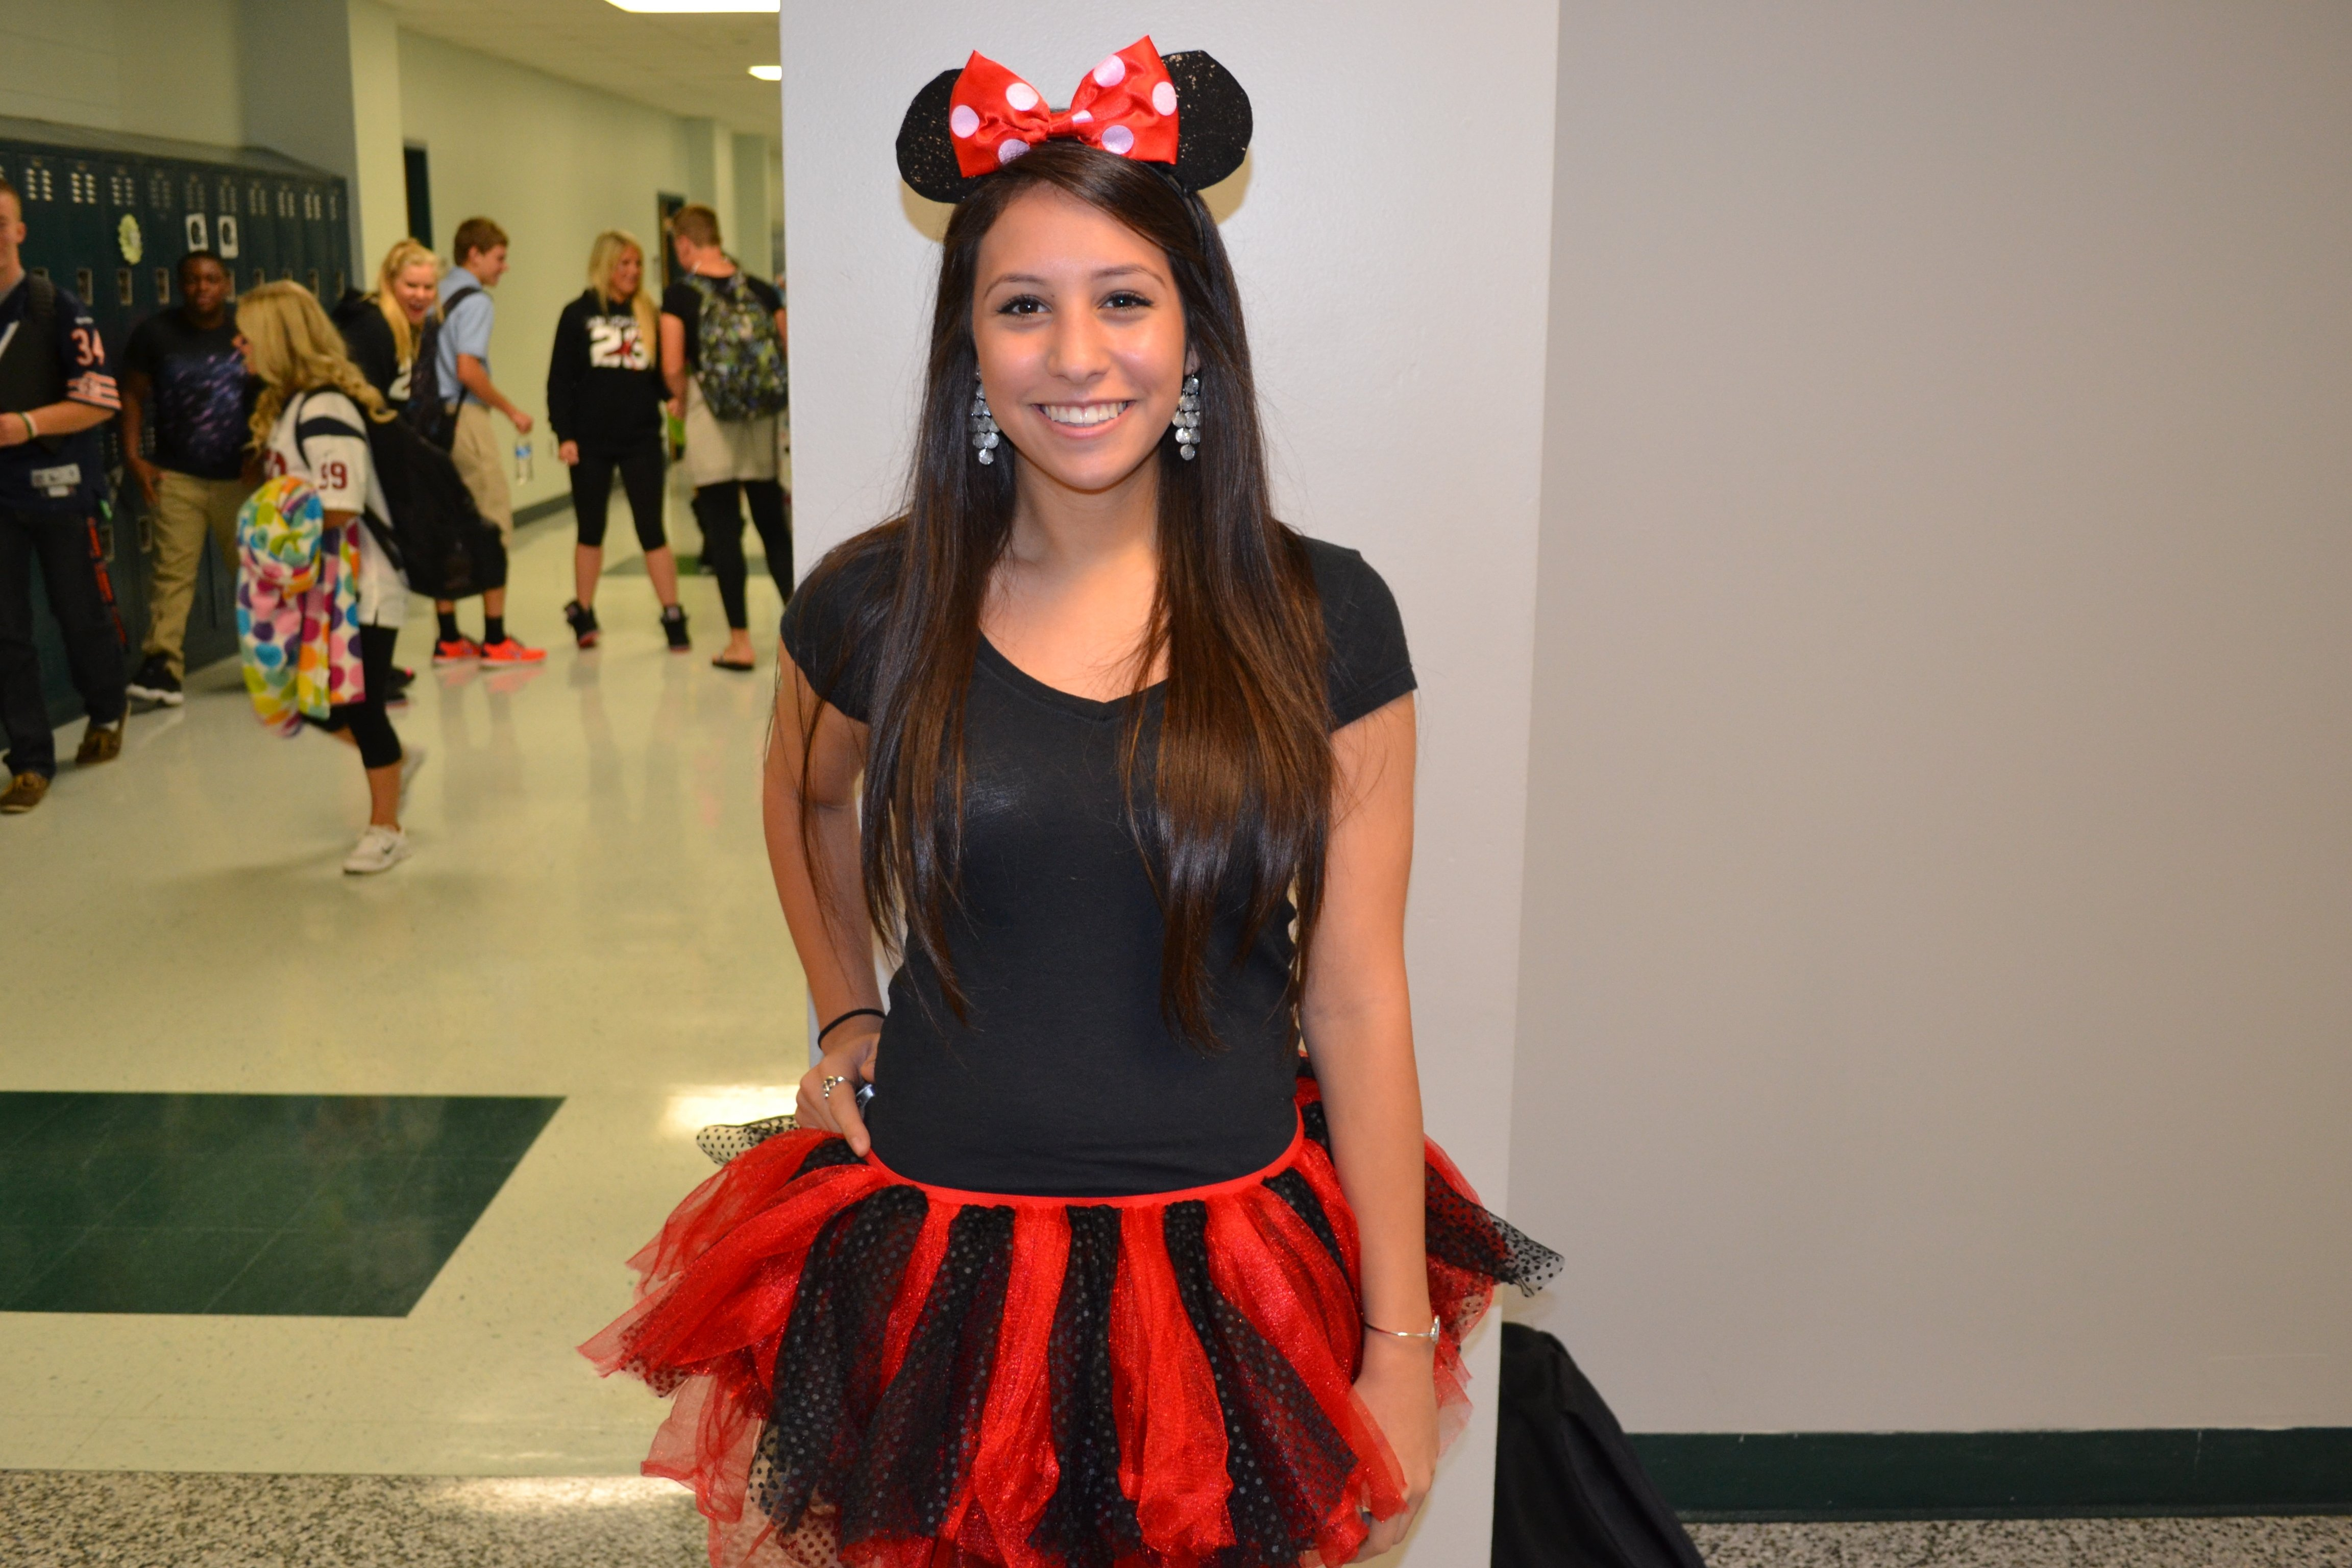 10 Great Celebrity Day Ideas For School celebrity character day high school homecoming ideas pinterest 1